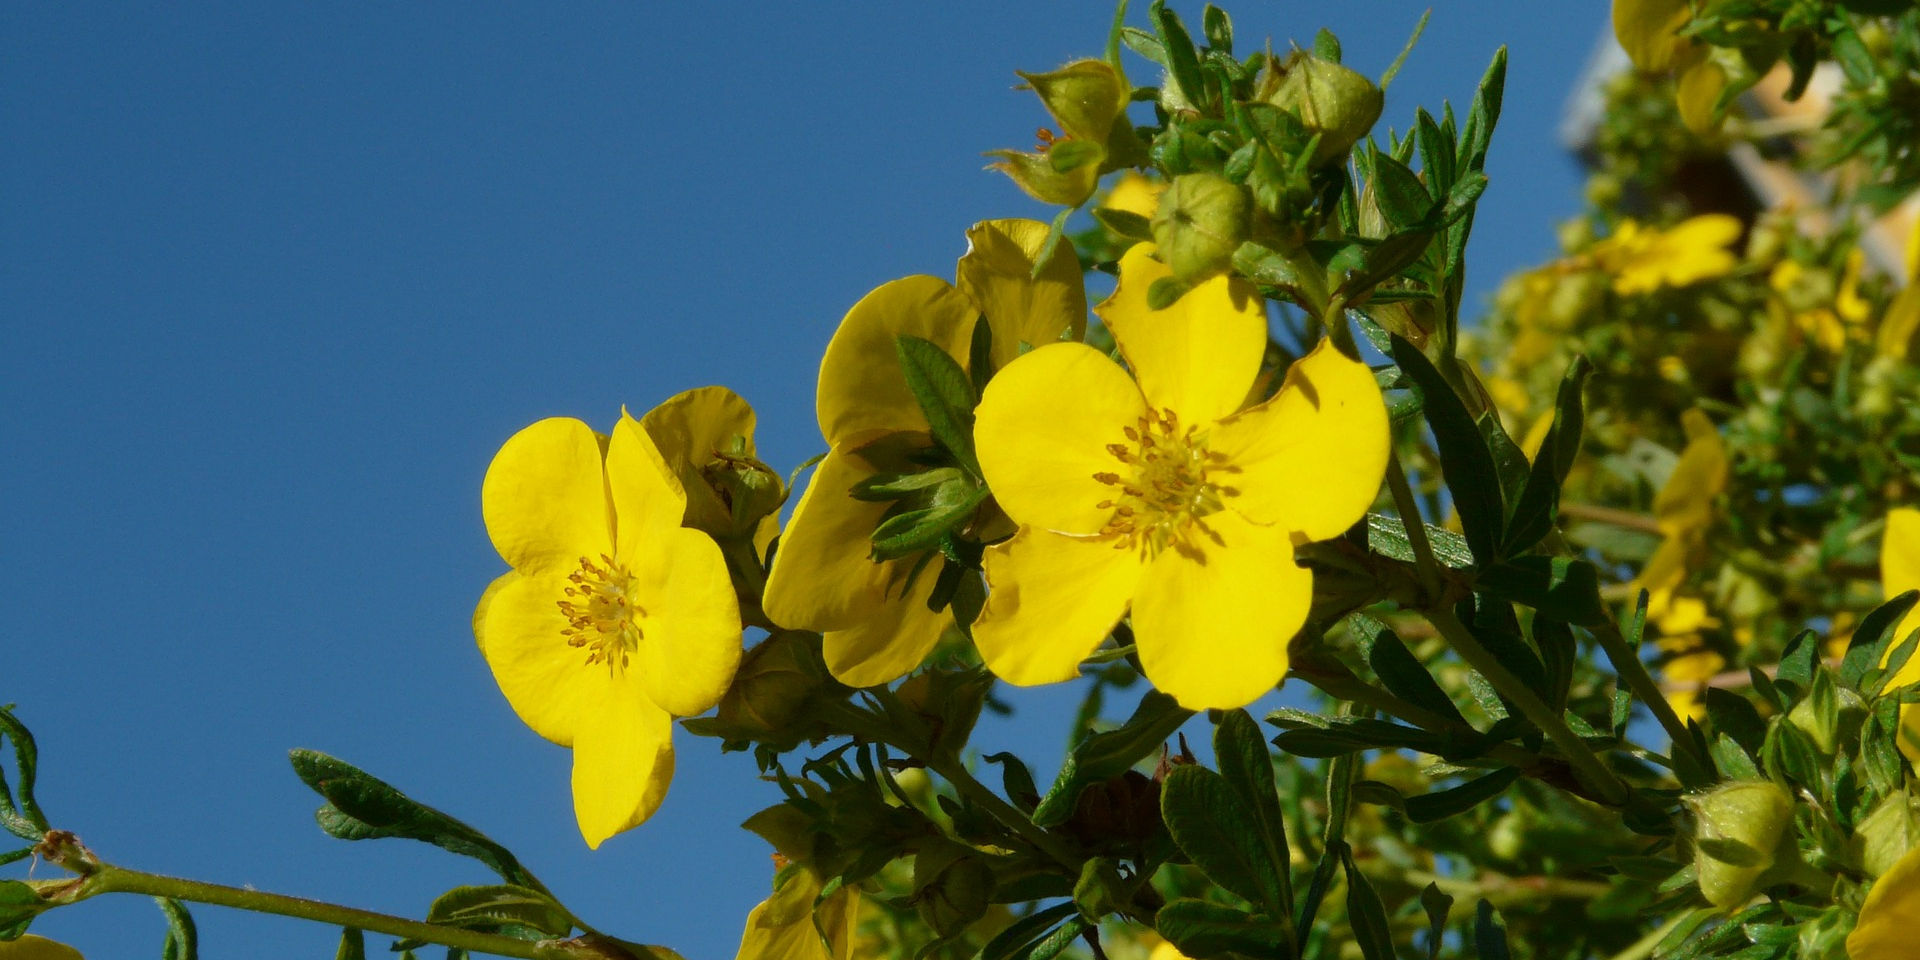 Potentilla goes mad in suburbia! Photo credit: Hans via Pixabay.